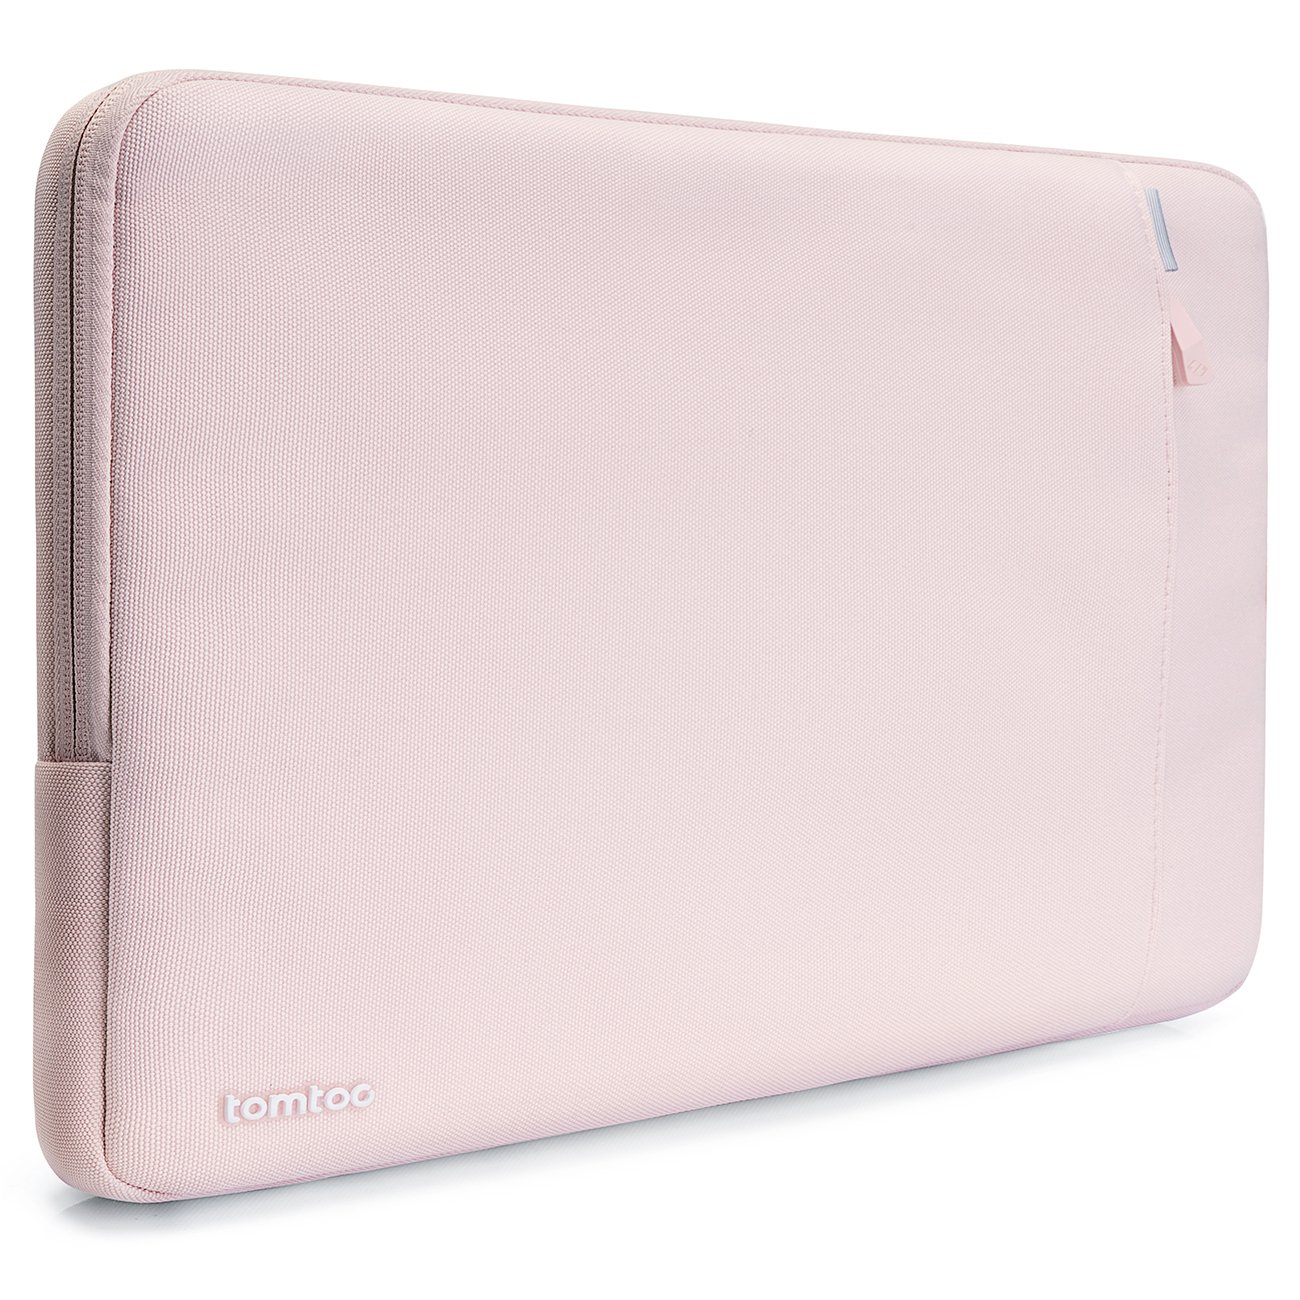 Funda Protectora Macbook Air, Macbook Pro 13 Tomtoc Rosa